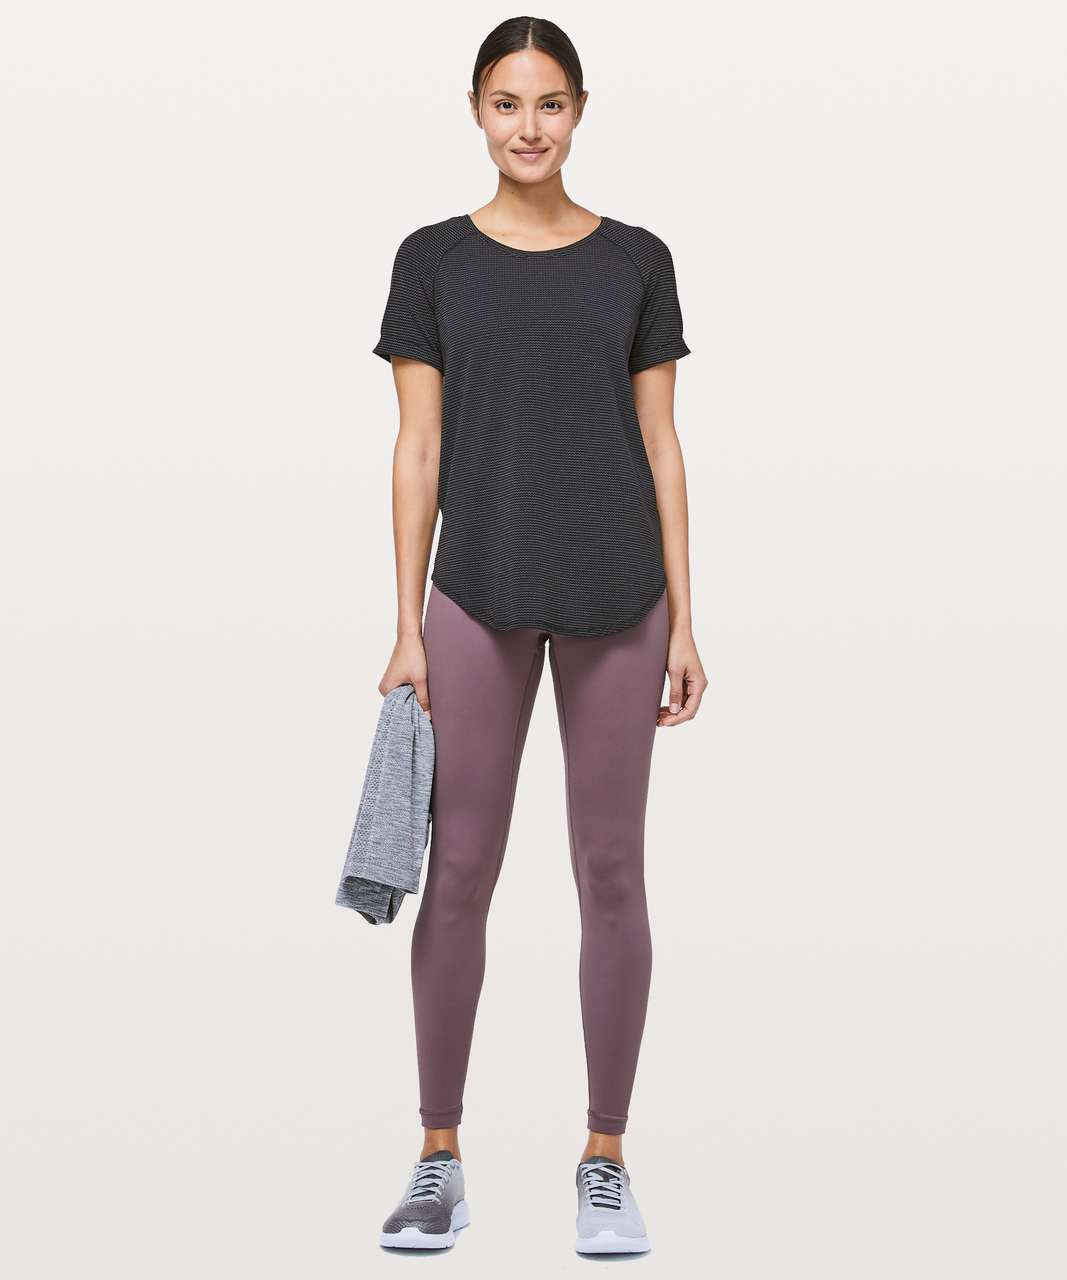 Lululemon Open Up Tie Back Tee - Black (First Release)